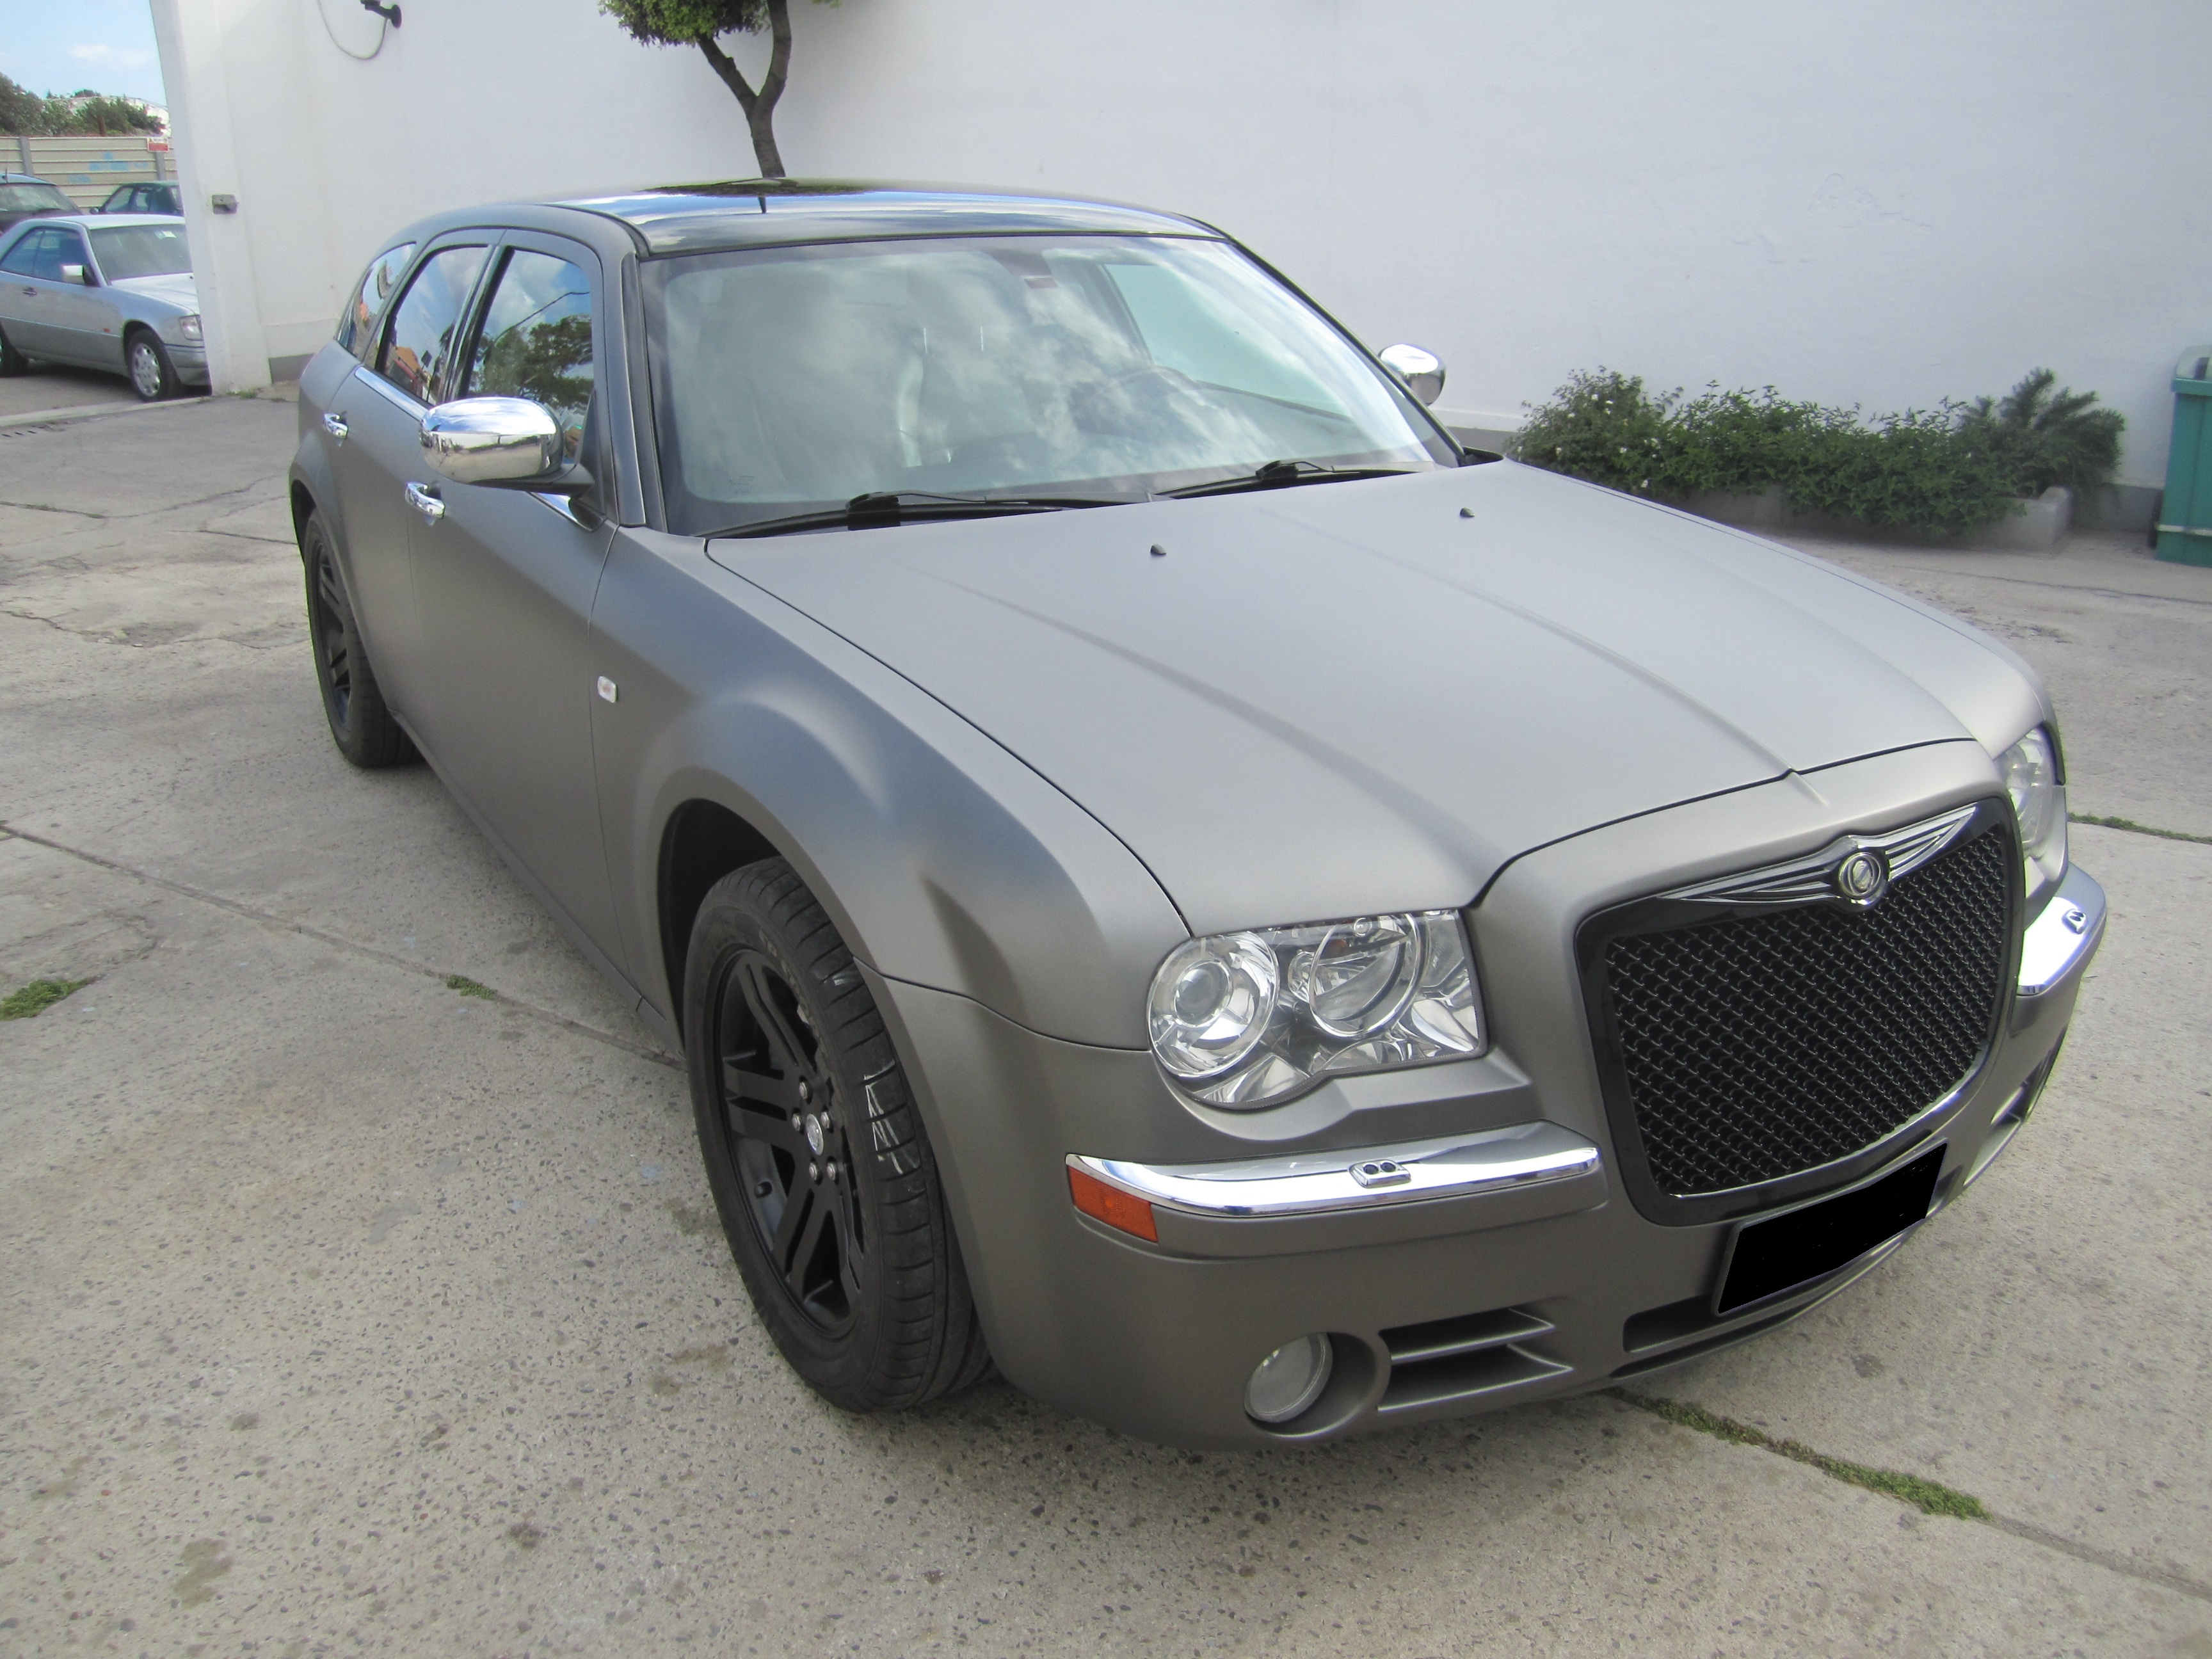 300 c no wrapping